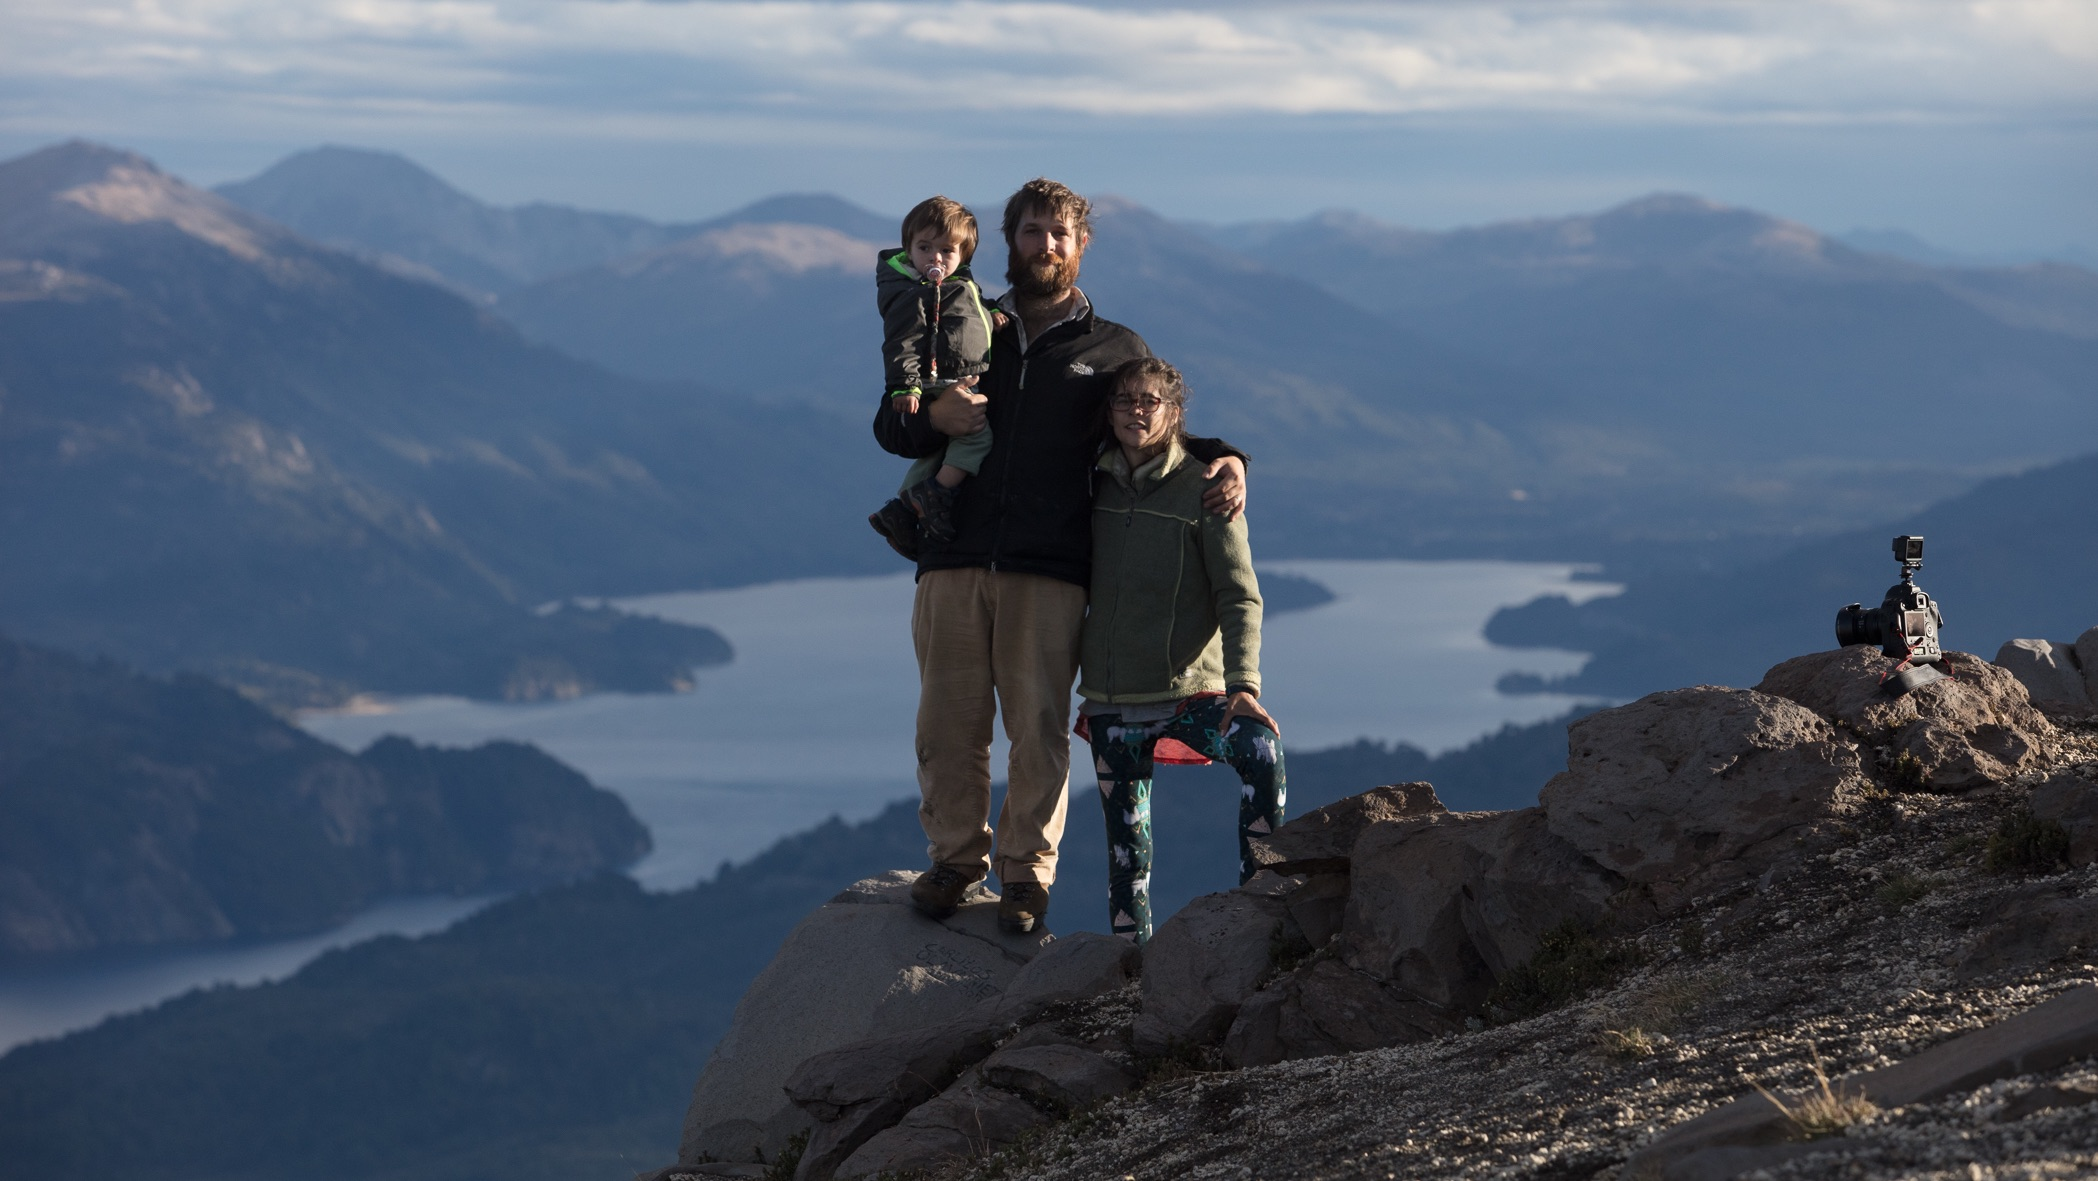 Simón, Inés and their son Teo while travelling through Northern Patagonia - Argentina